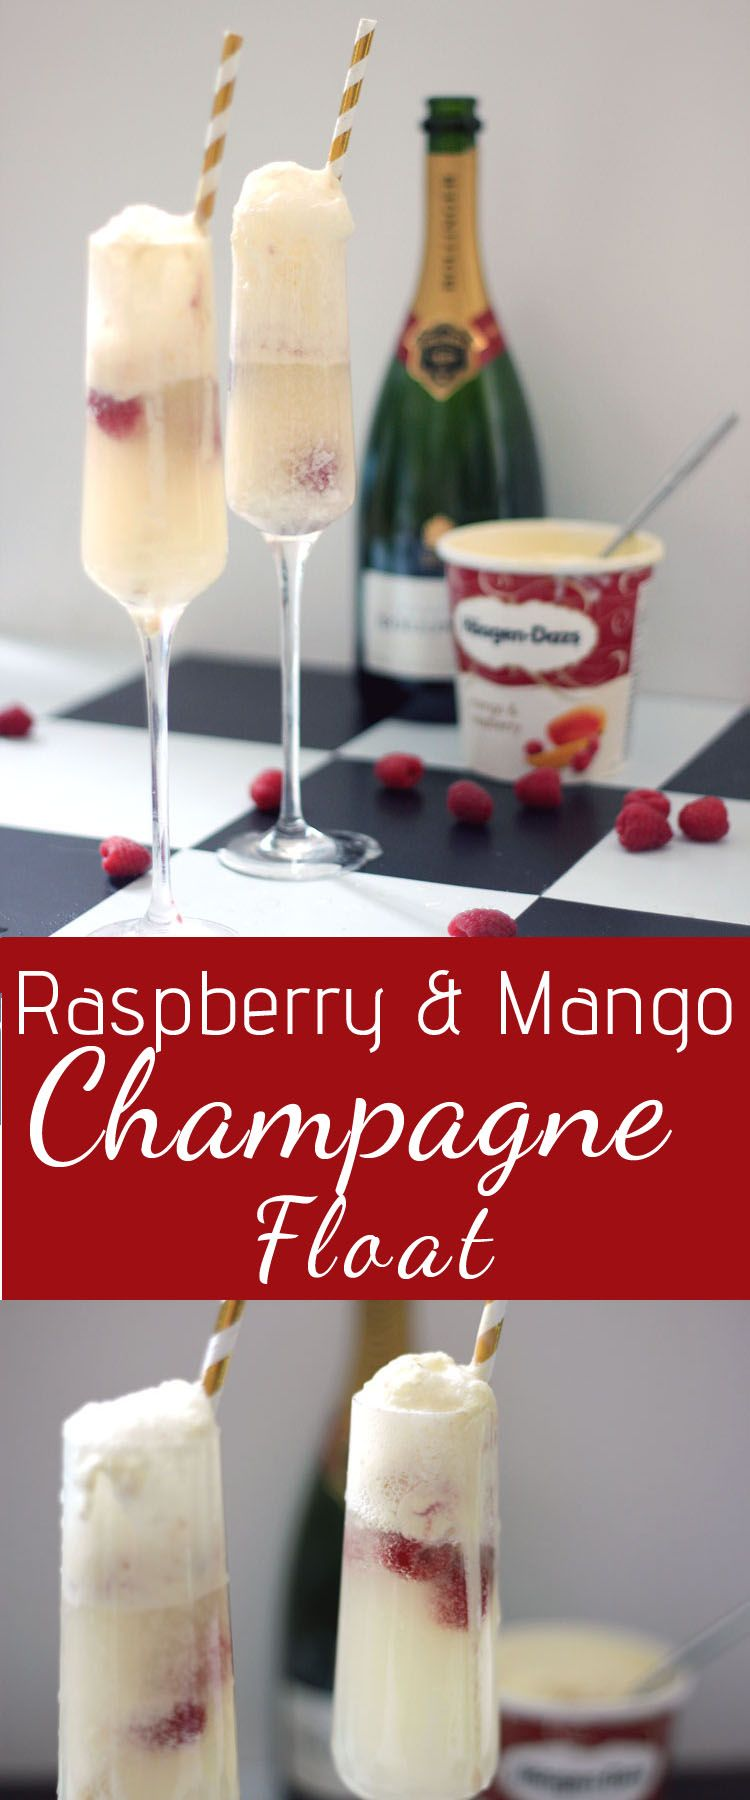 Champagne Float Cocktail With Mango And Raspberries Champagne Float Food Cocktails